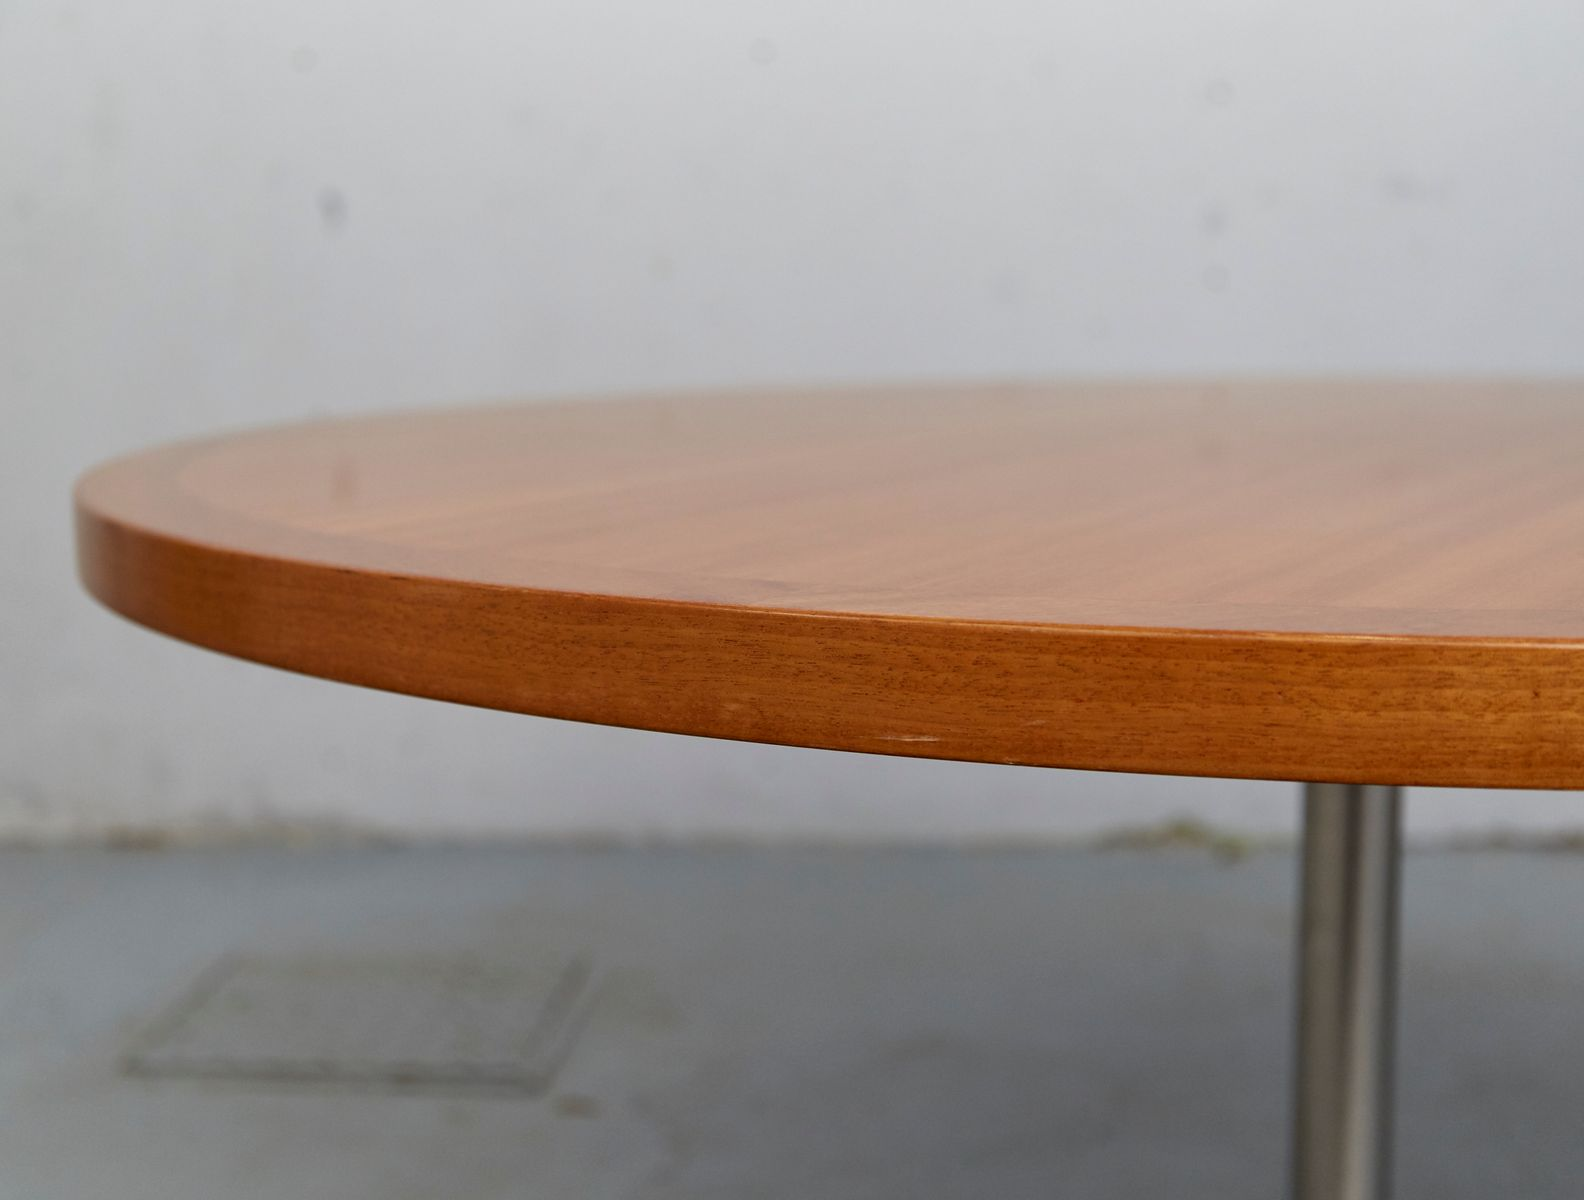 Vintage Rotatable Wood And Aluminum Coffee Table By Preben Fabricius For  Walter Knoll, 1960s